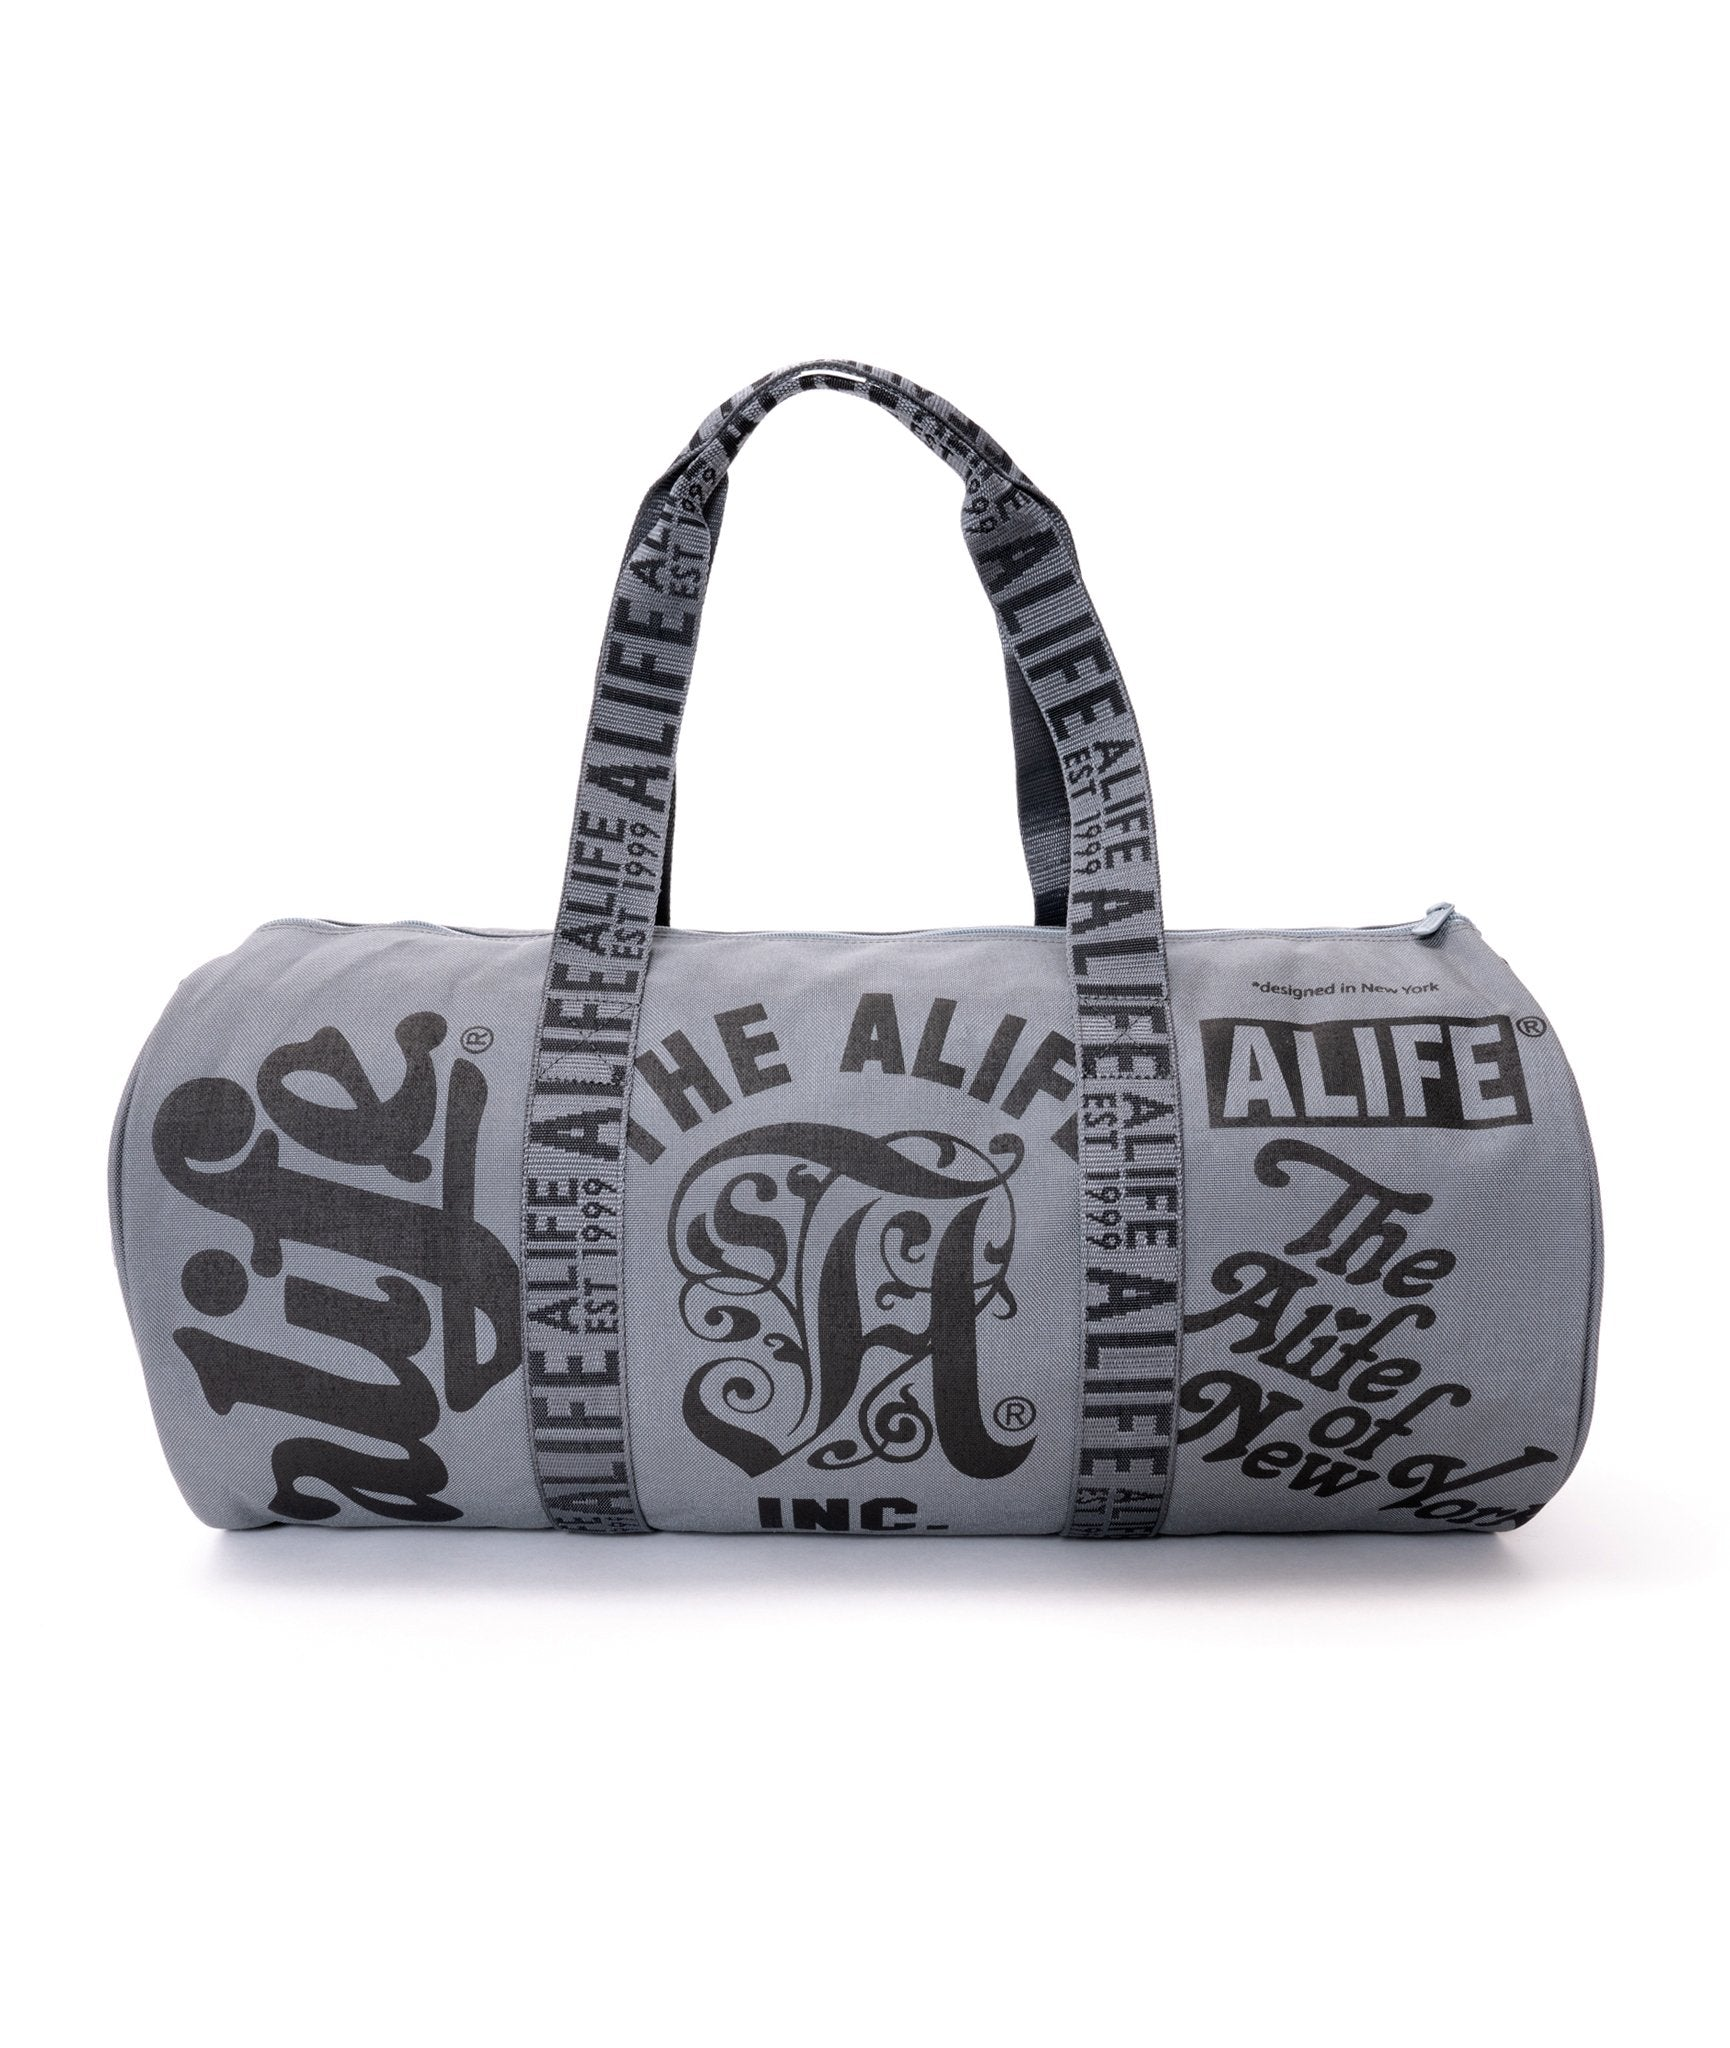 Alife/Manhattan Portage Large Drumbag